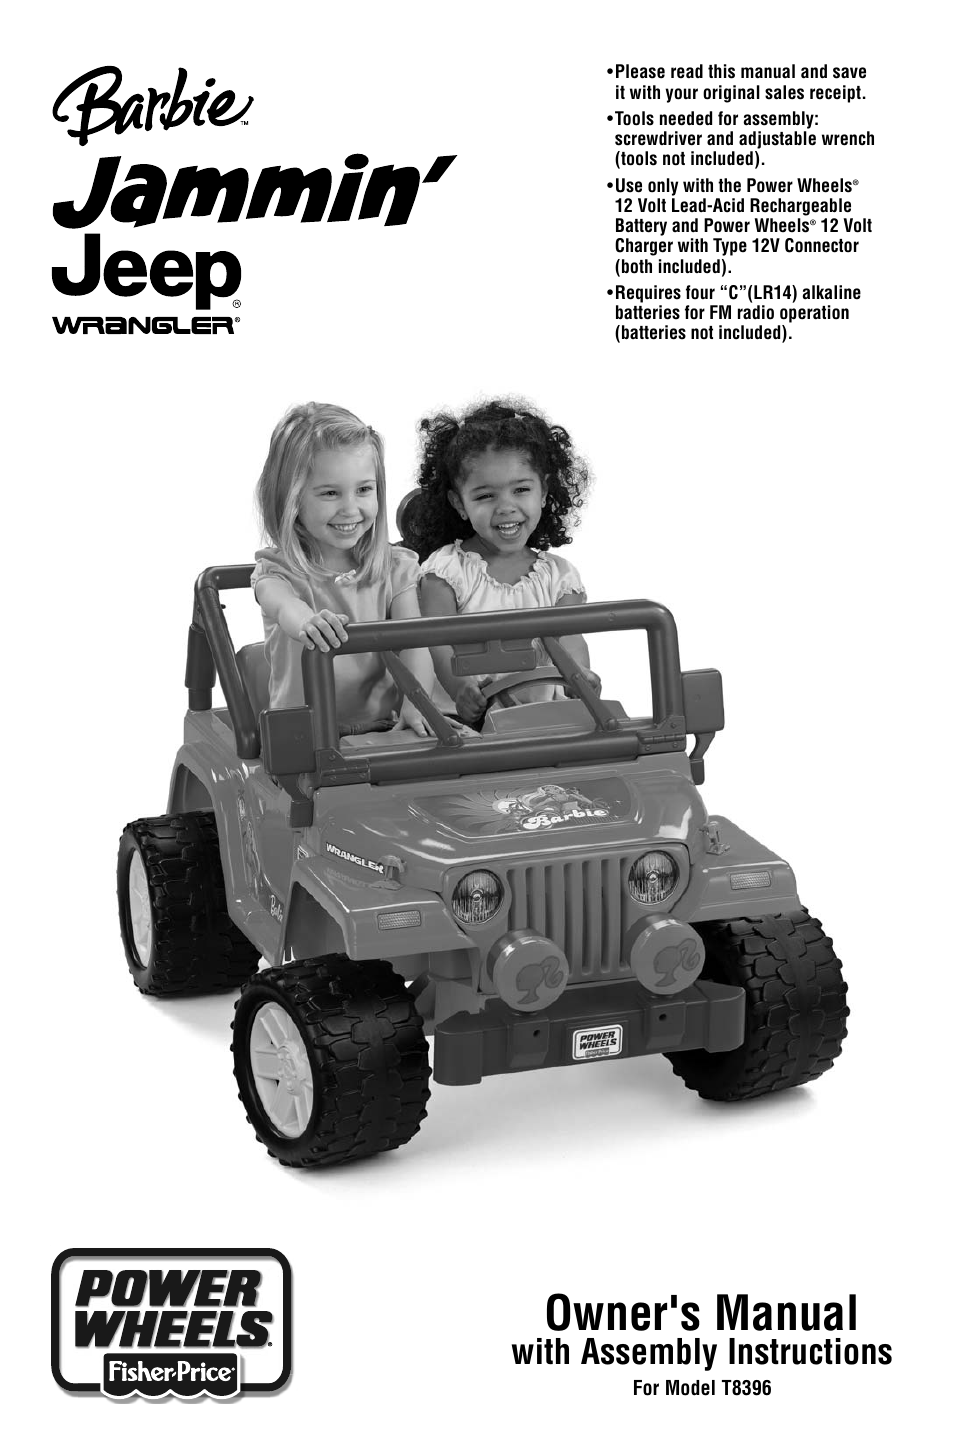 barbie jammin jeep t8396 user manual 24 pages rh manualsdir com Walmart Power Wheels Barbie Jeep Power Wheels for Girls